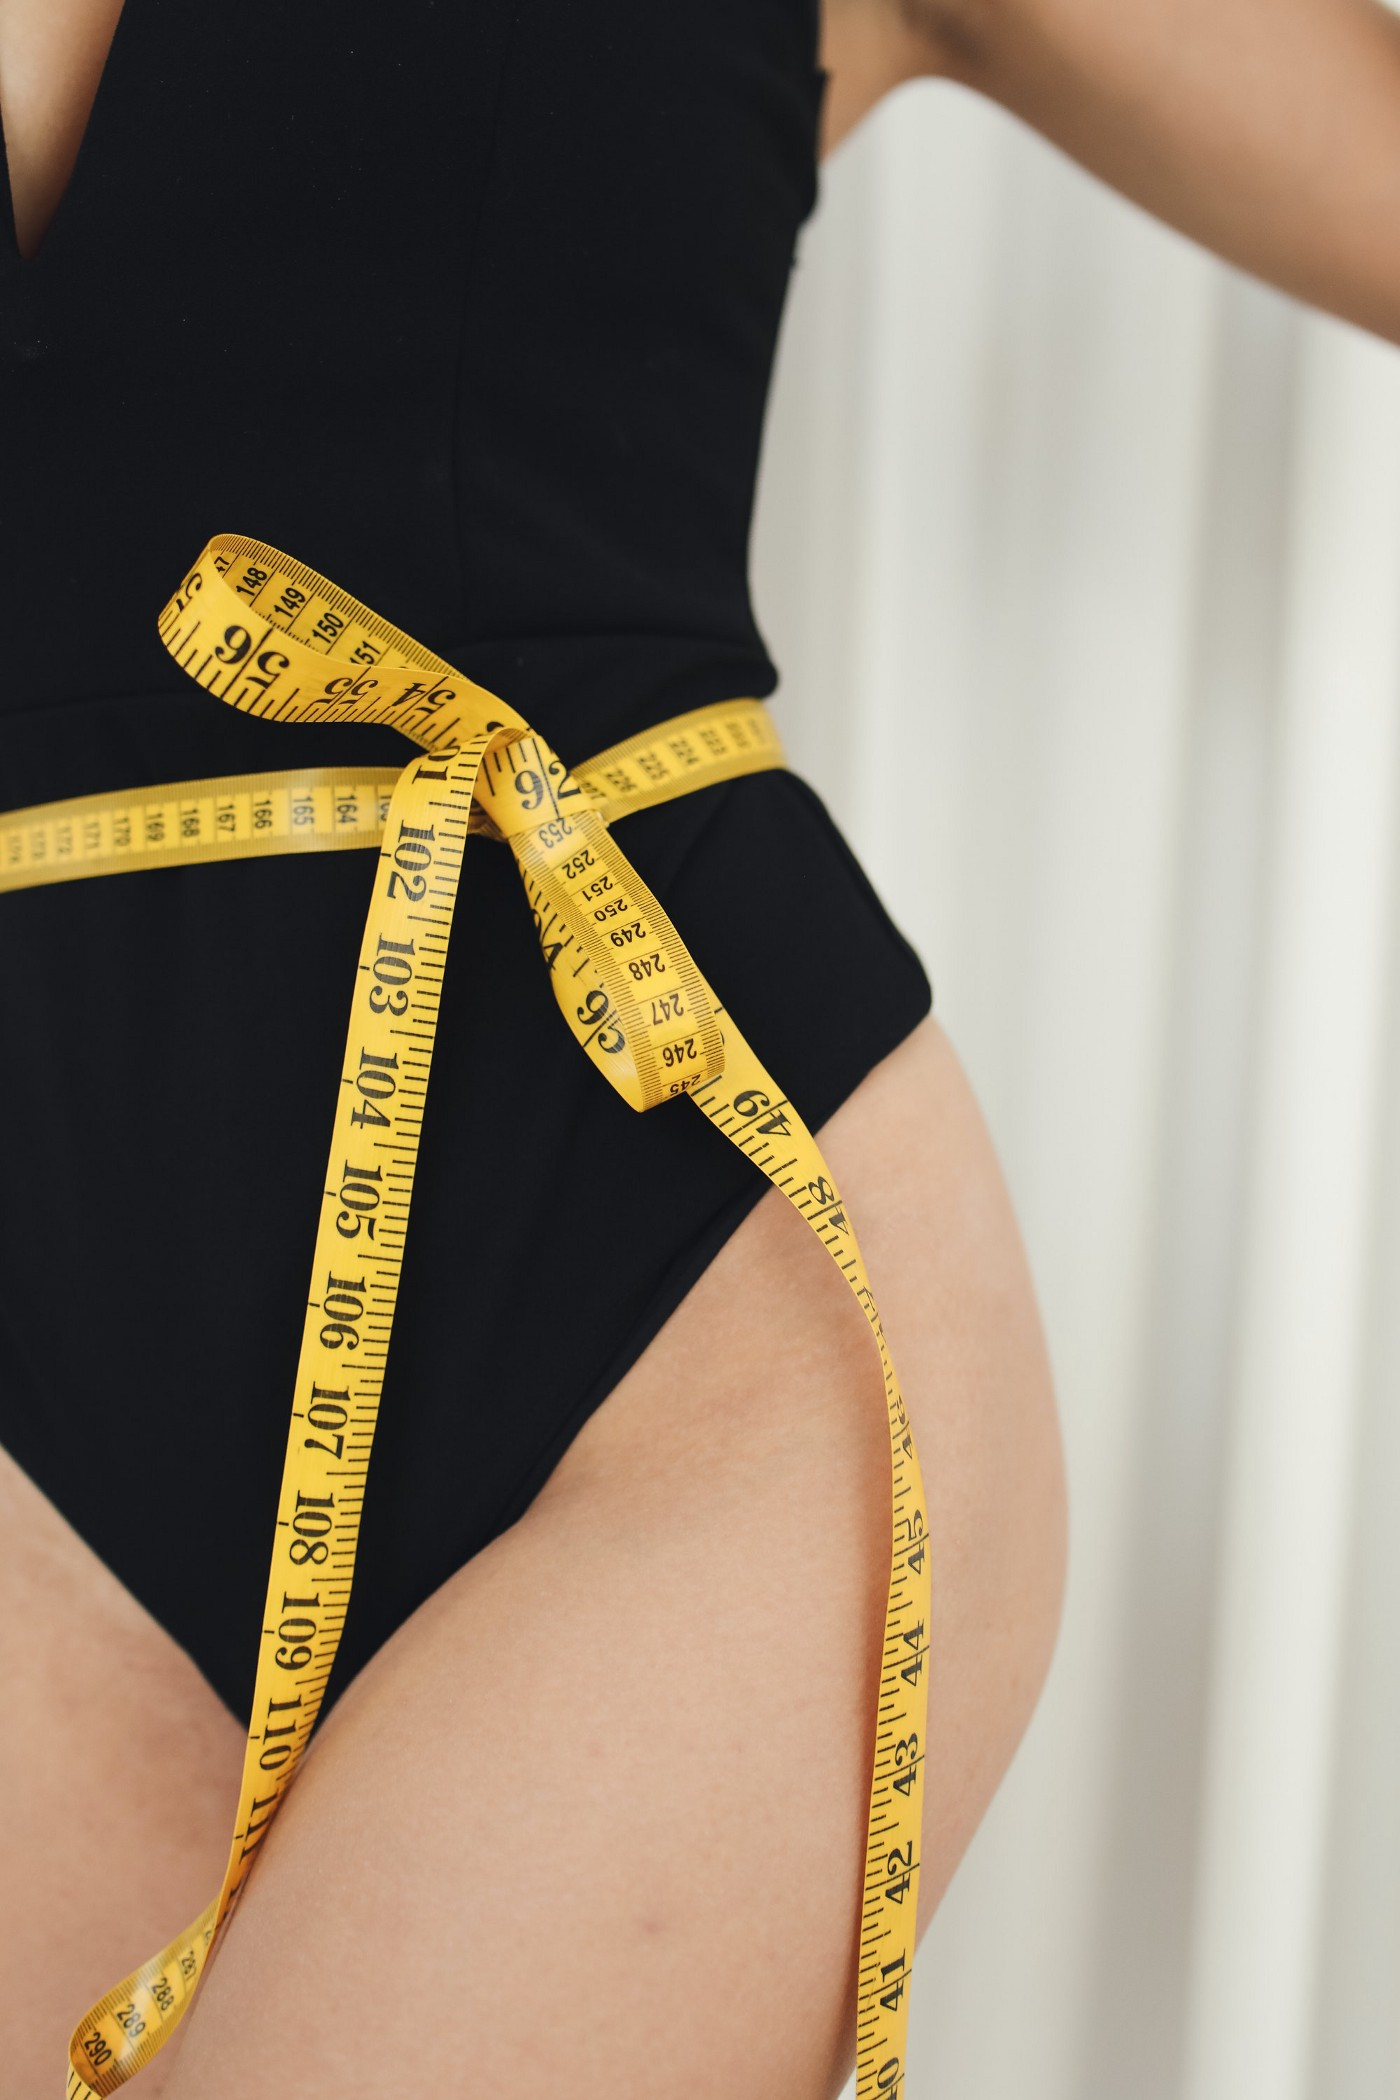 A measuring tape tied around a waist because of a fat flaw